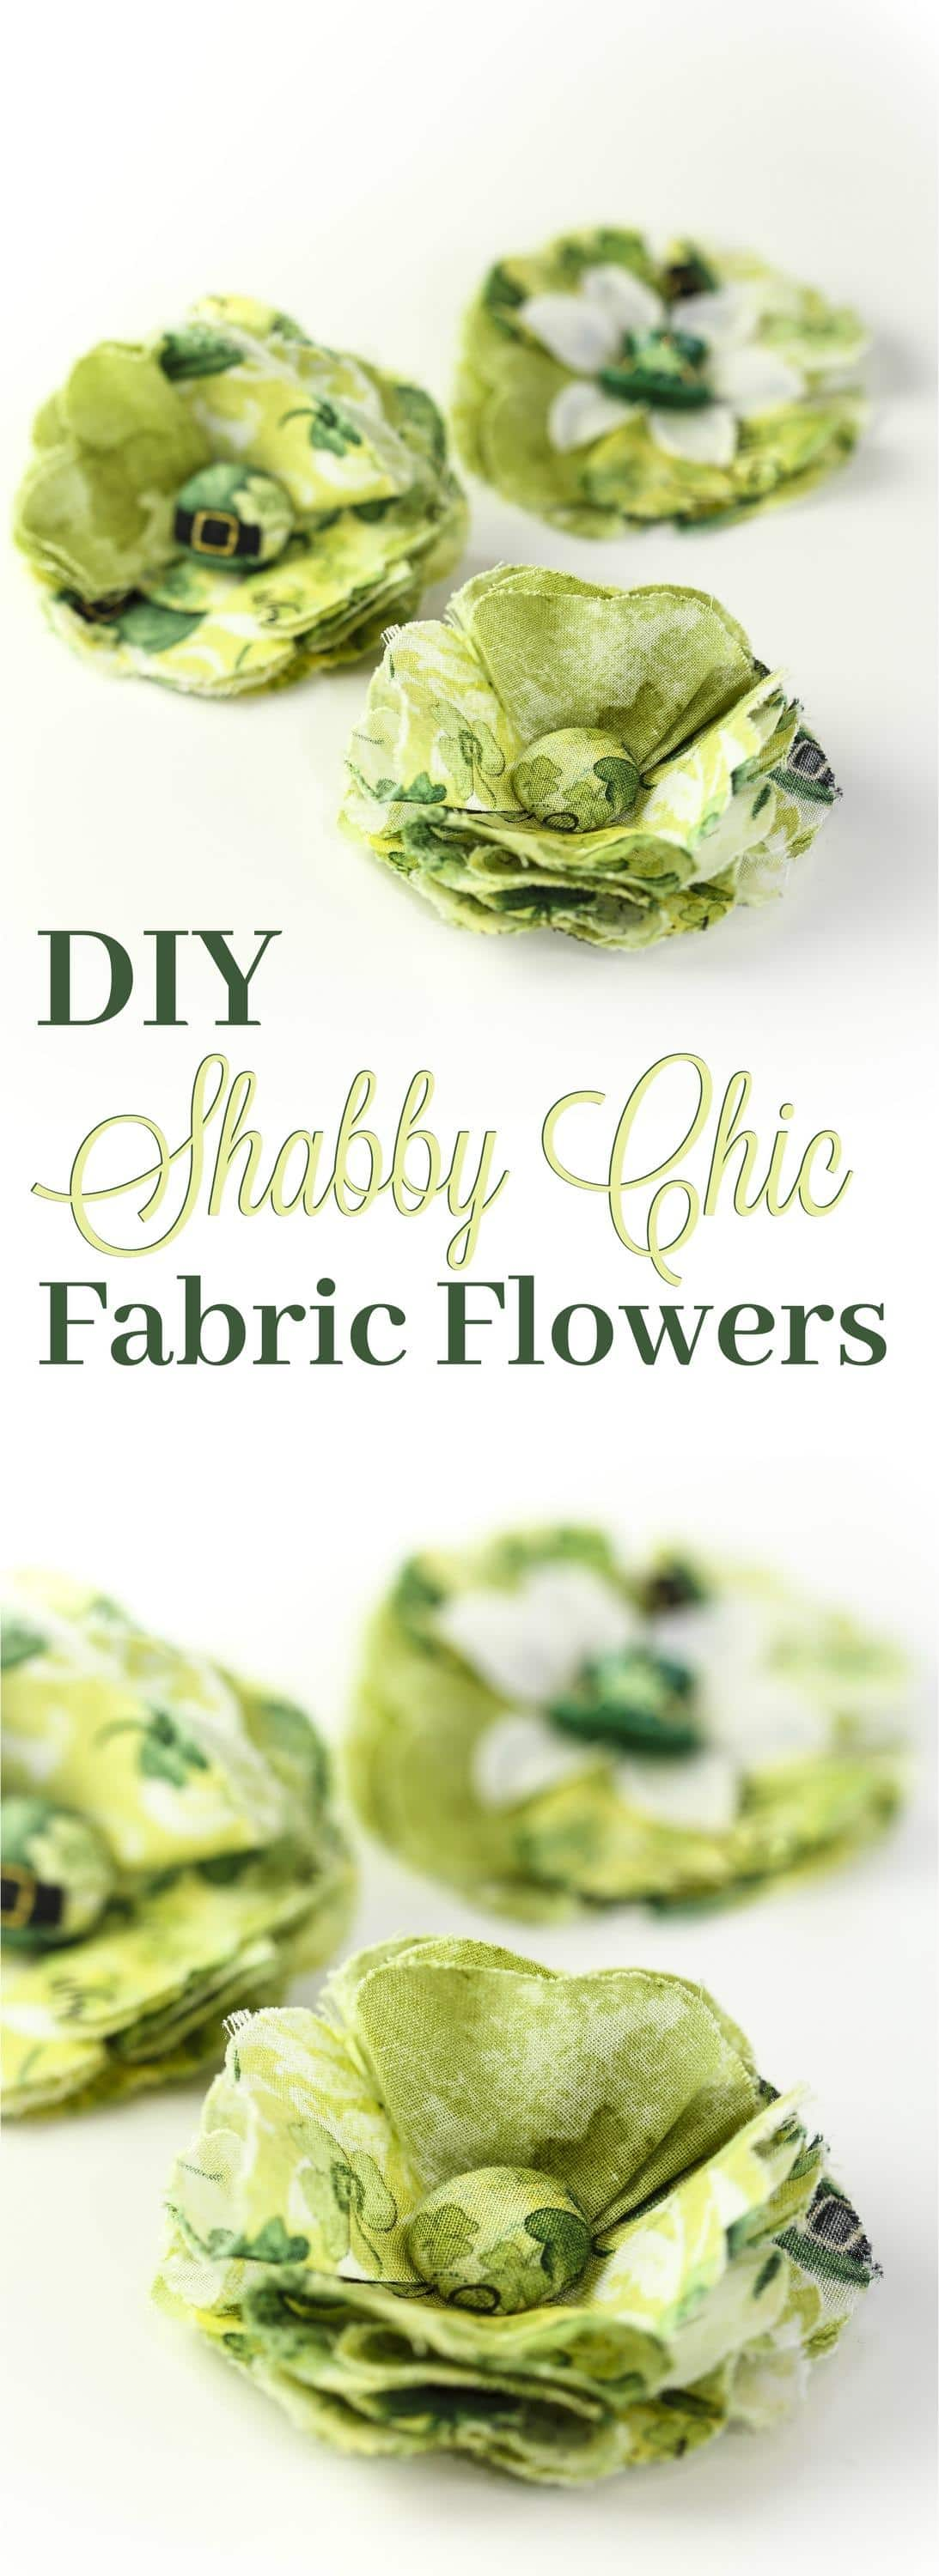 Stunning Shabby Chic Fabric Posy without the Boutique Price! These DIY Fabric Flowers can be used as hair accessories, jewelry, or even a bag accessory! Perfect for St. Patricks day, or simply change the fabric and you can match any holiday season or special event!